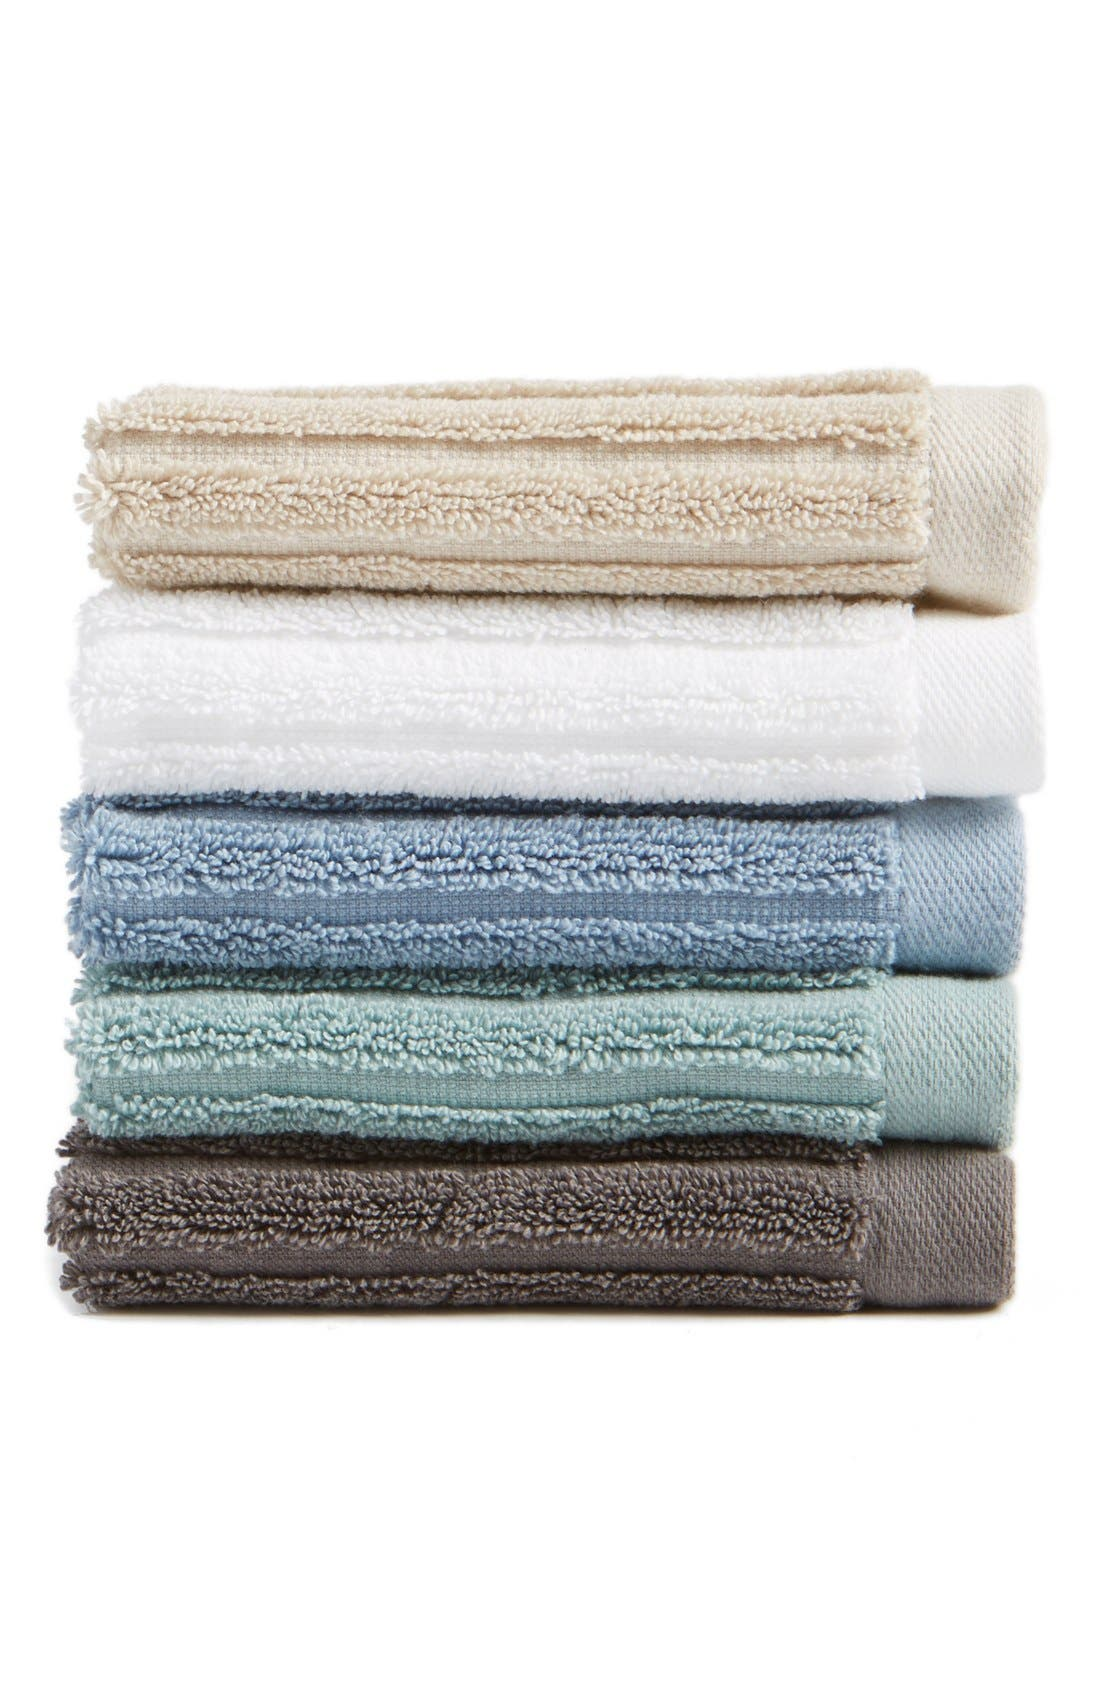 Alternate Image 1 Selected - Nordstrom at Home 'Modern Rib' Wash Towel (2 for $12)